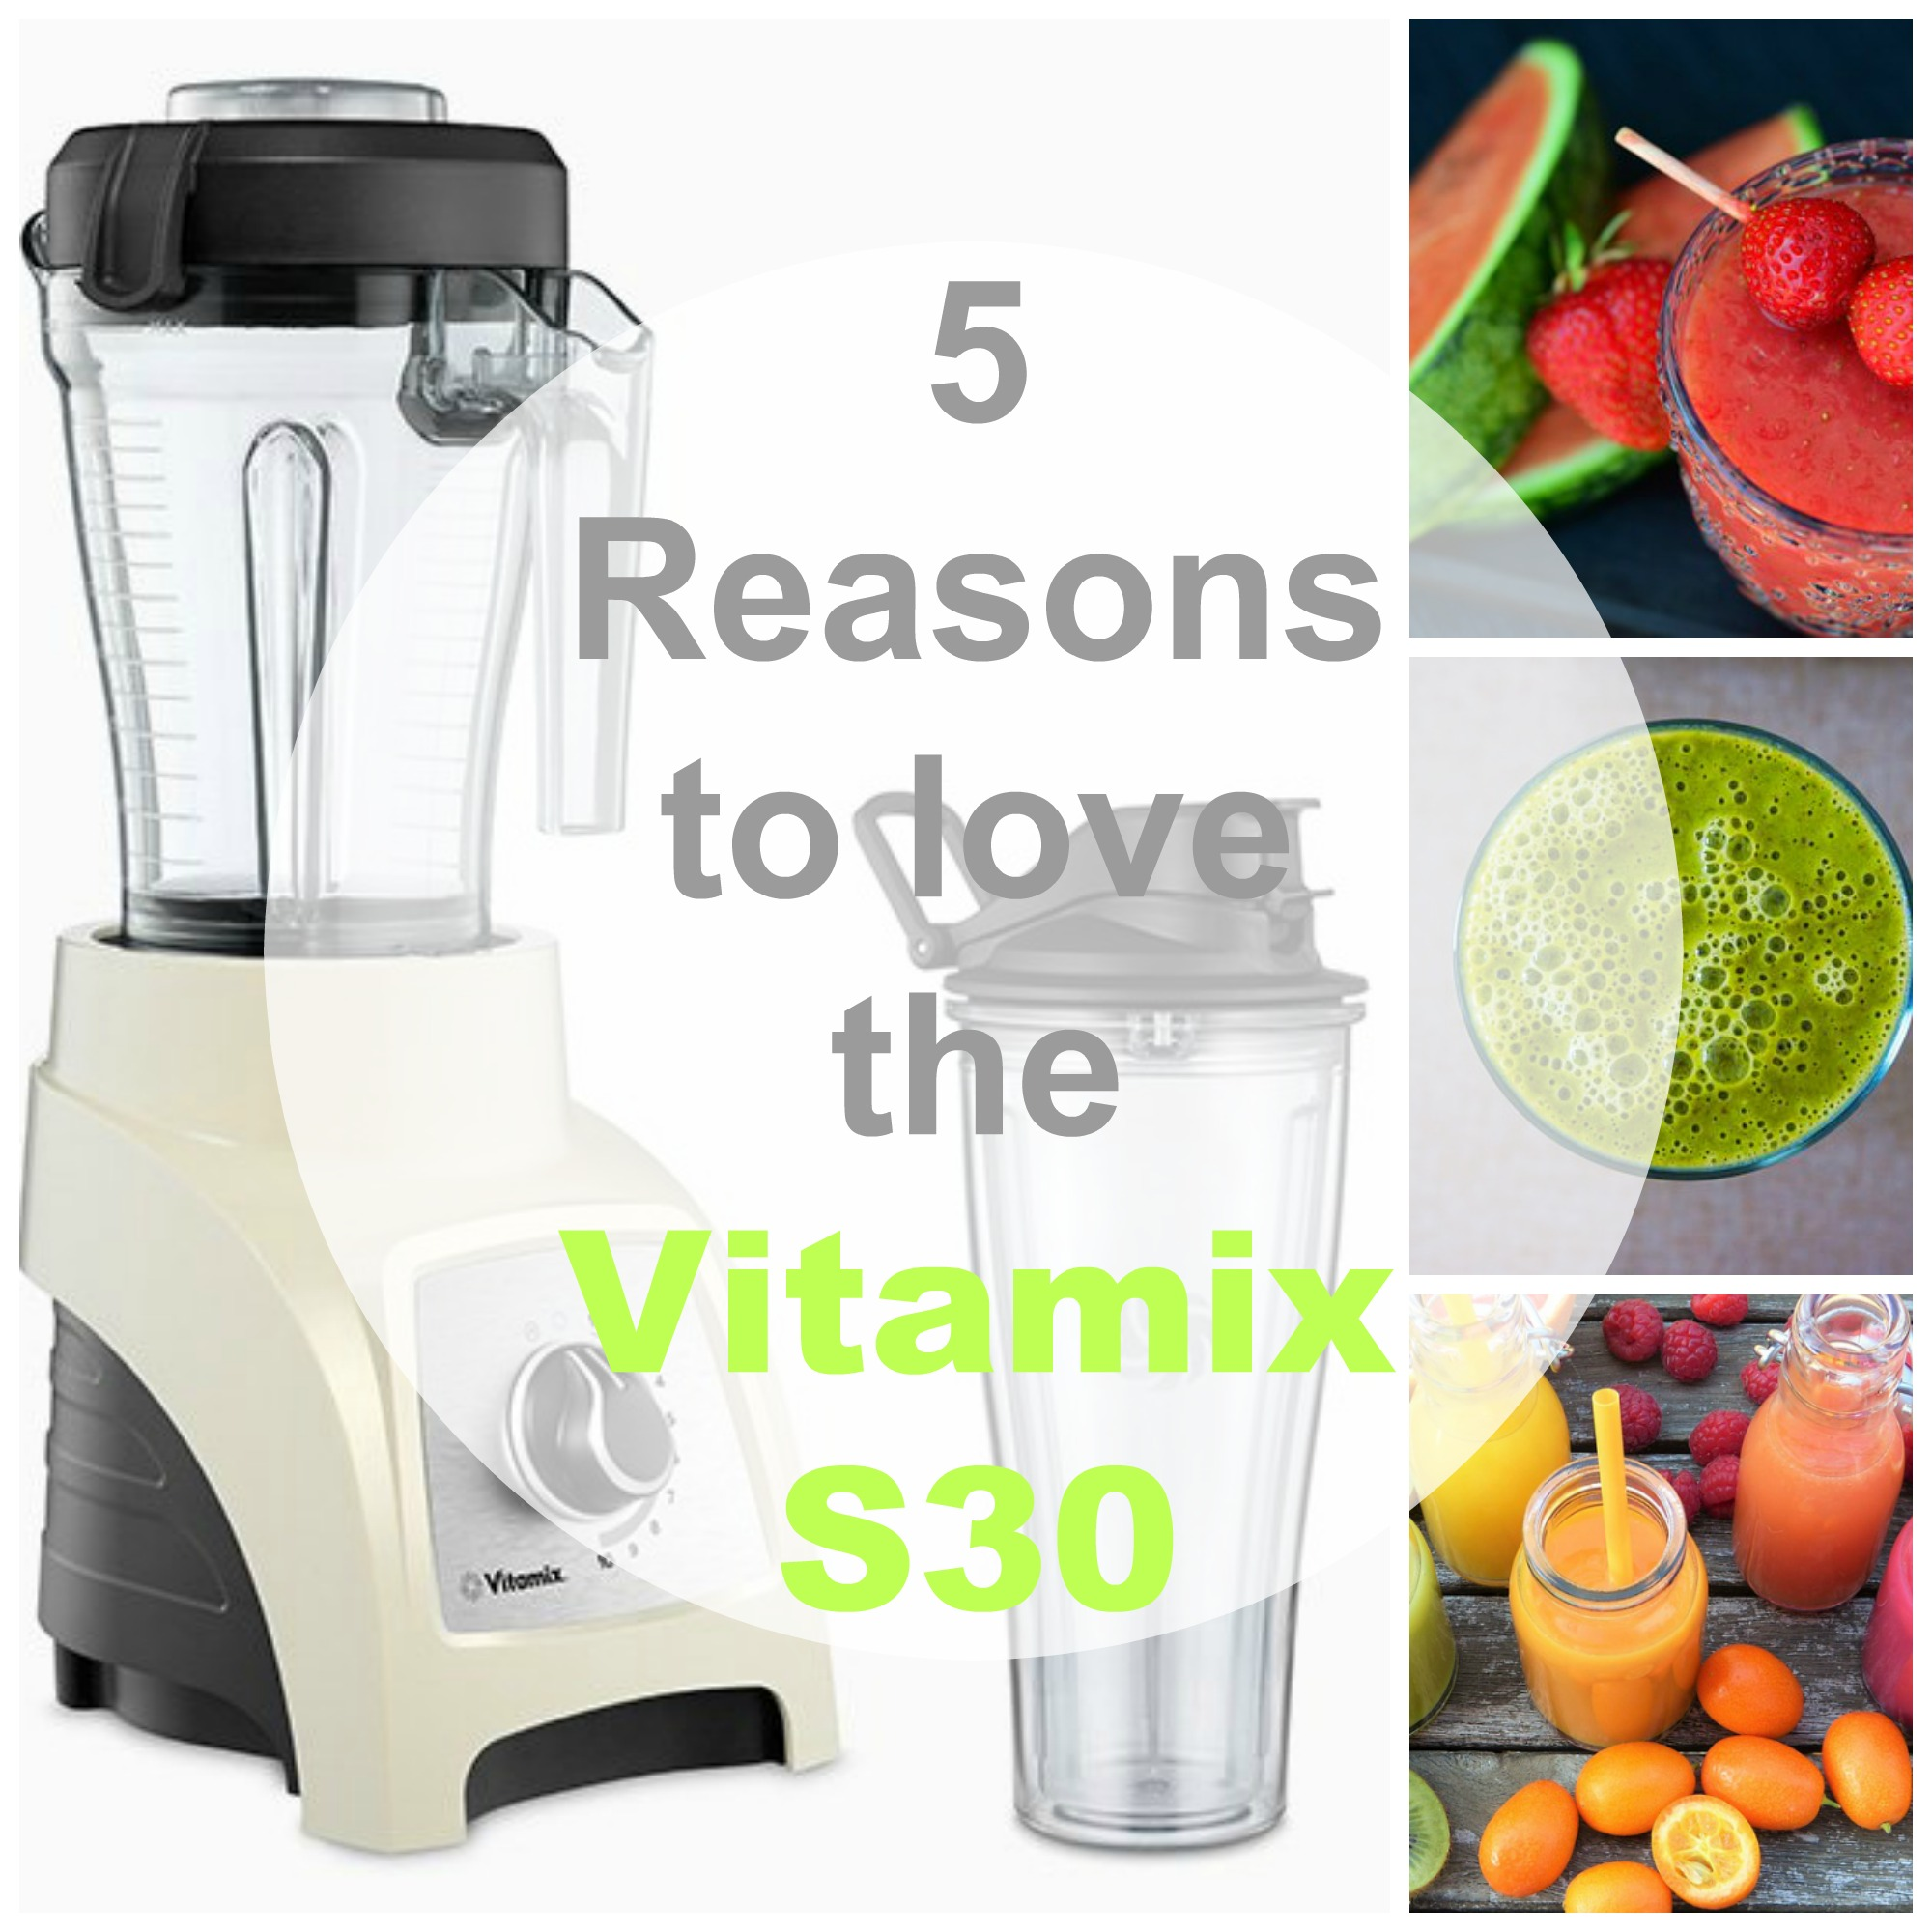 Five reasons to love the Vitamix s30